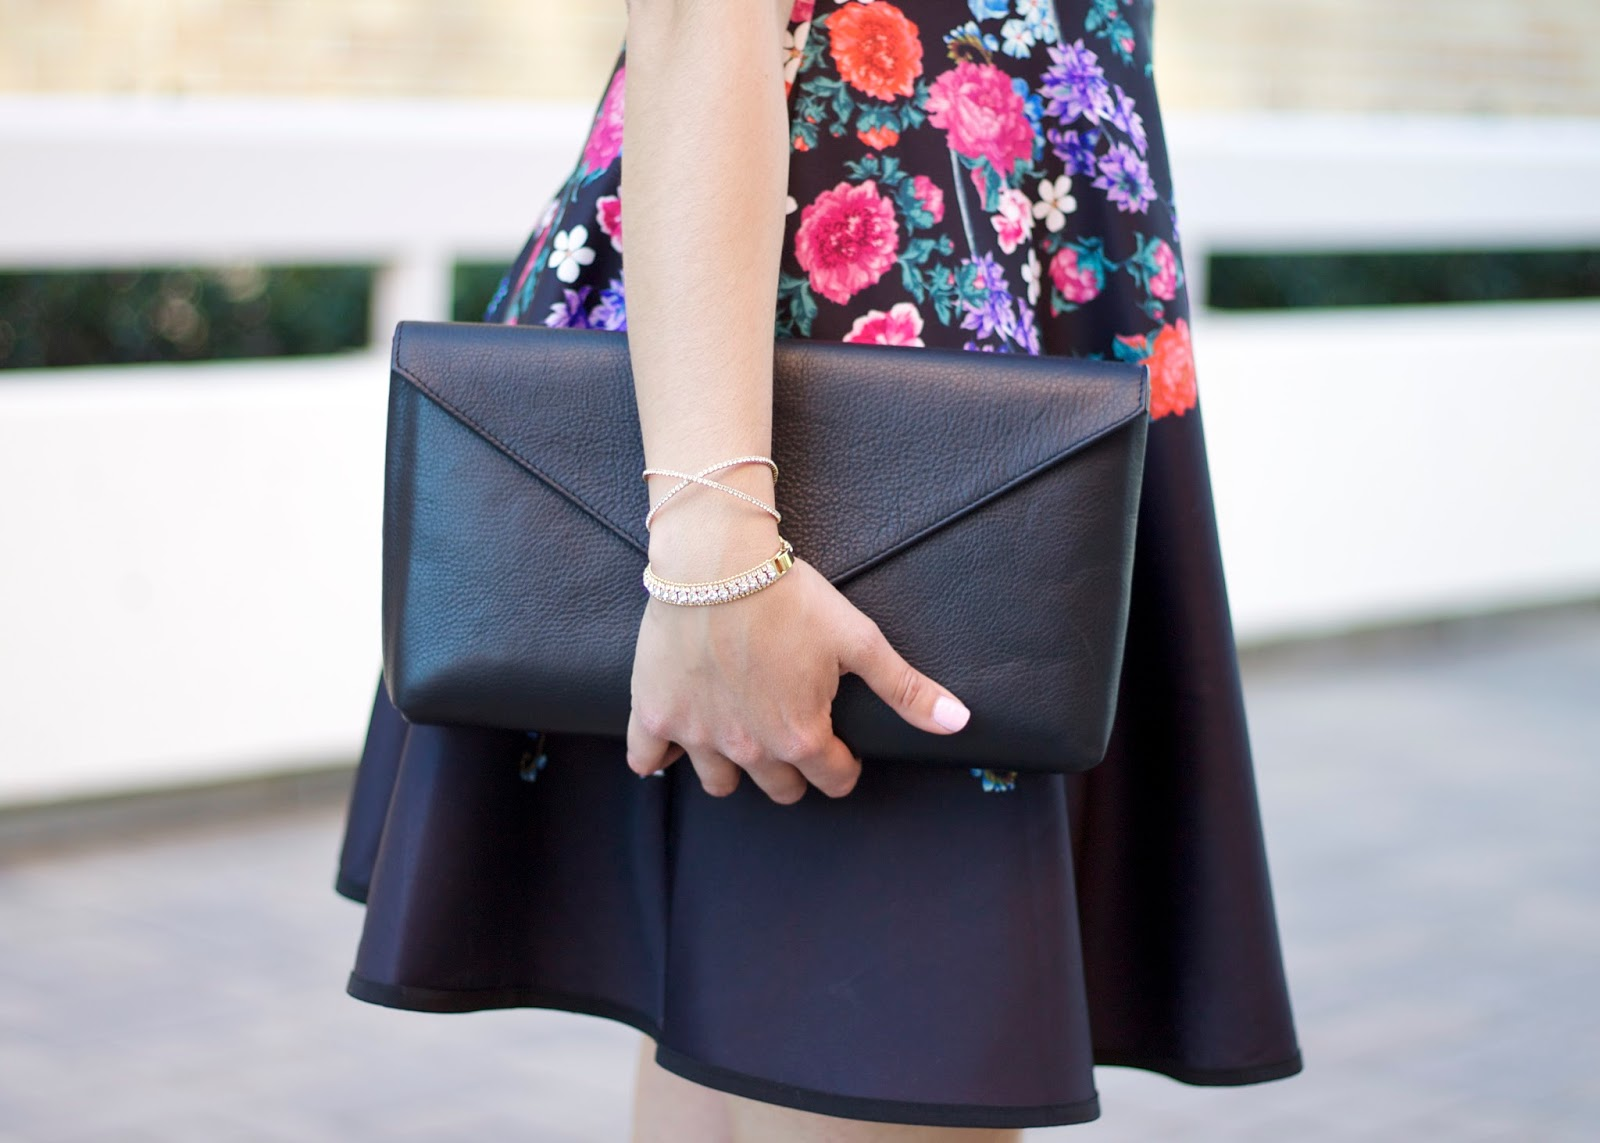 morana accessories, linell ellis clutch, floral dress, chicwish floral dress